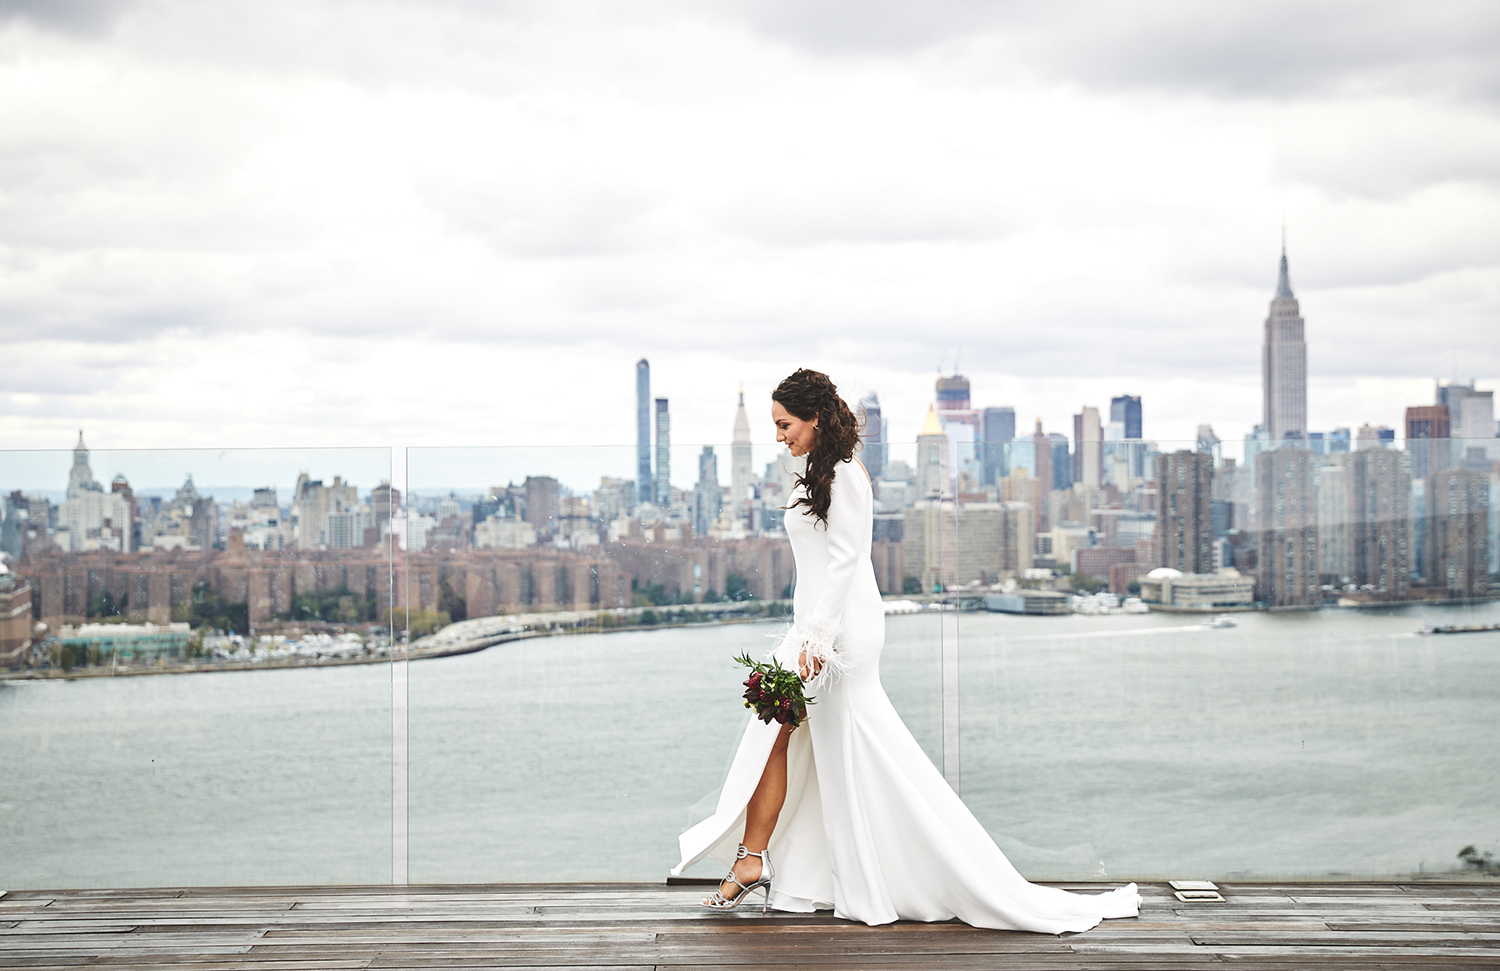 170930_WilliamValeWeddingPhotography_BrooklynWeddingPhotographer_By_BriJohnsonWeddings_0058.jpg